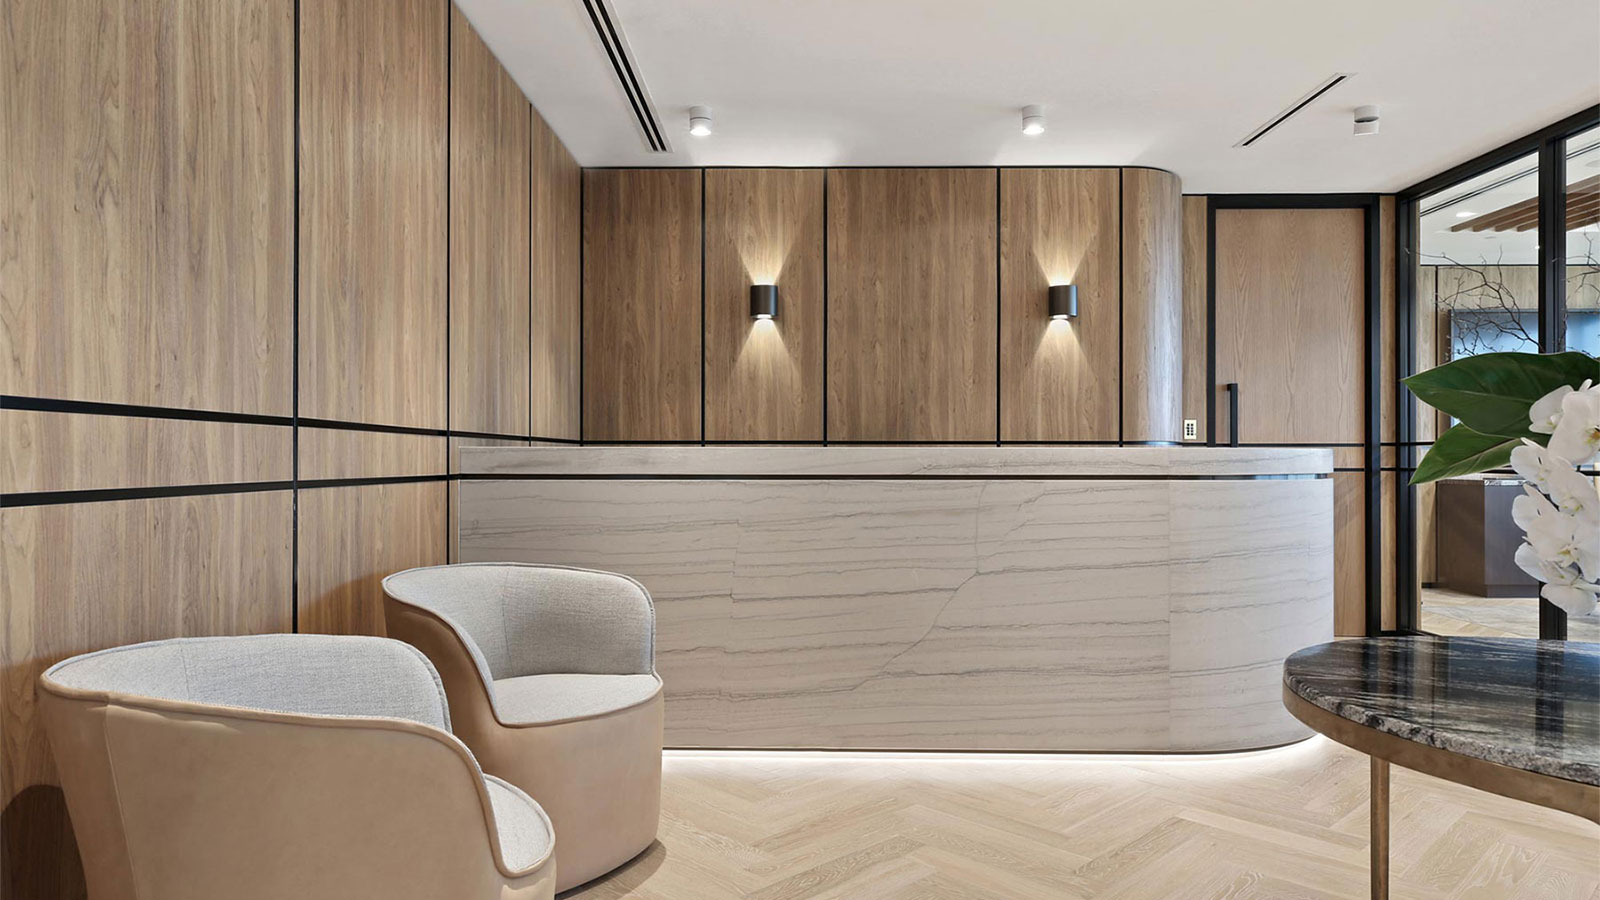 Valmont kkr 1 macquarie square high lobby 1600x900